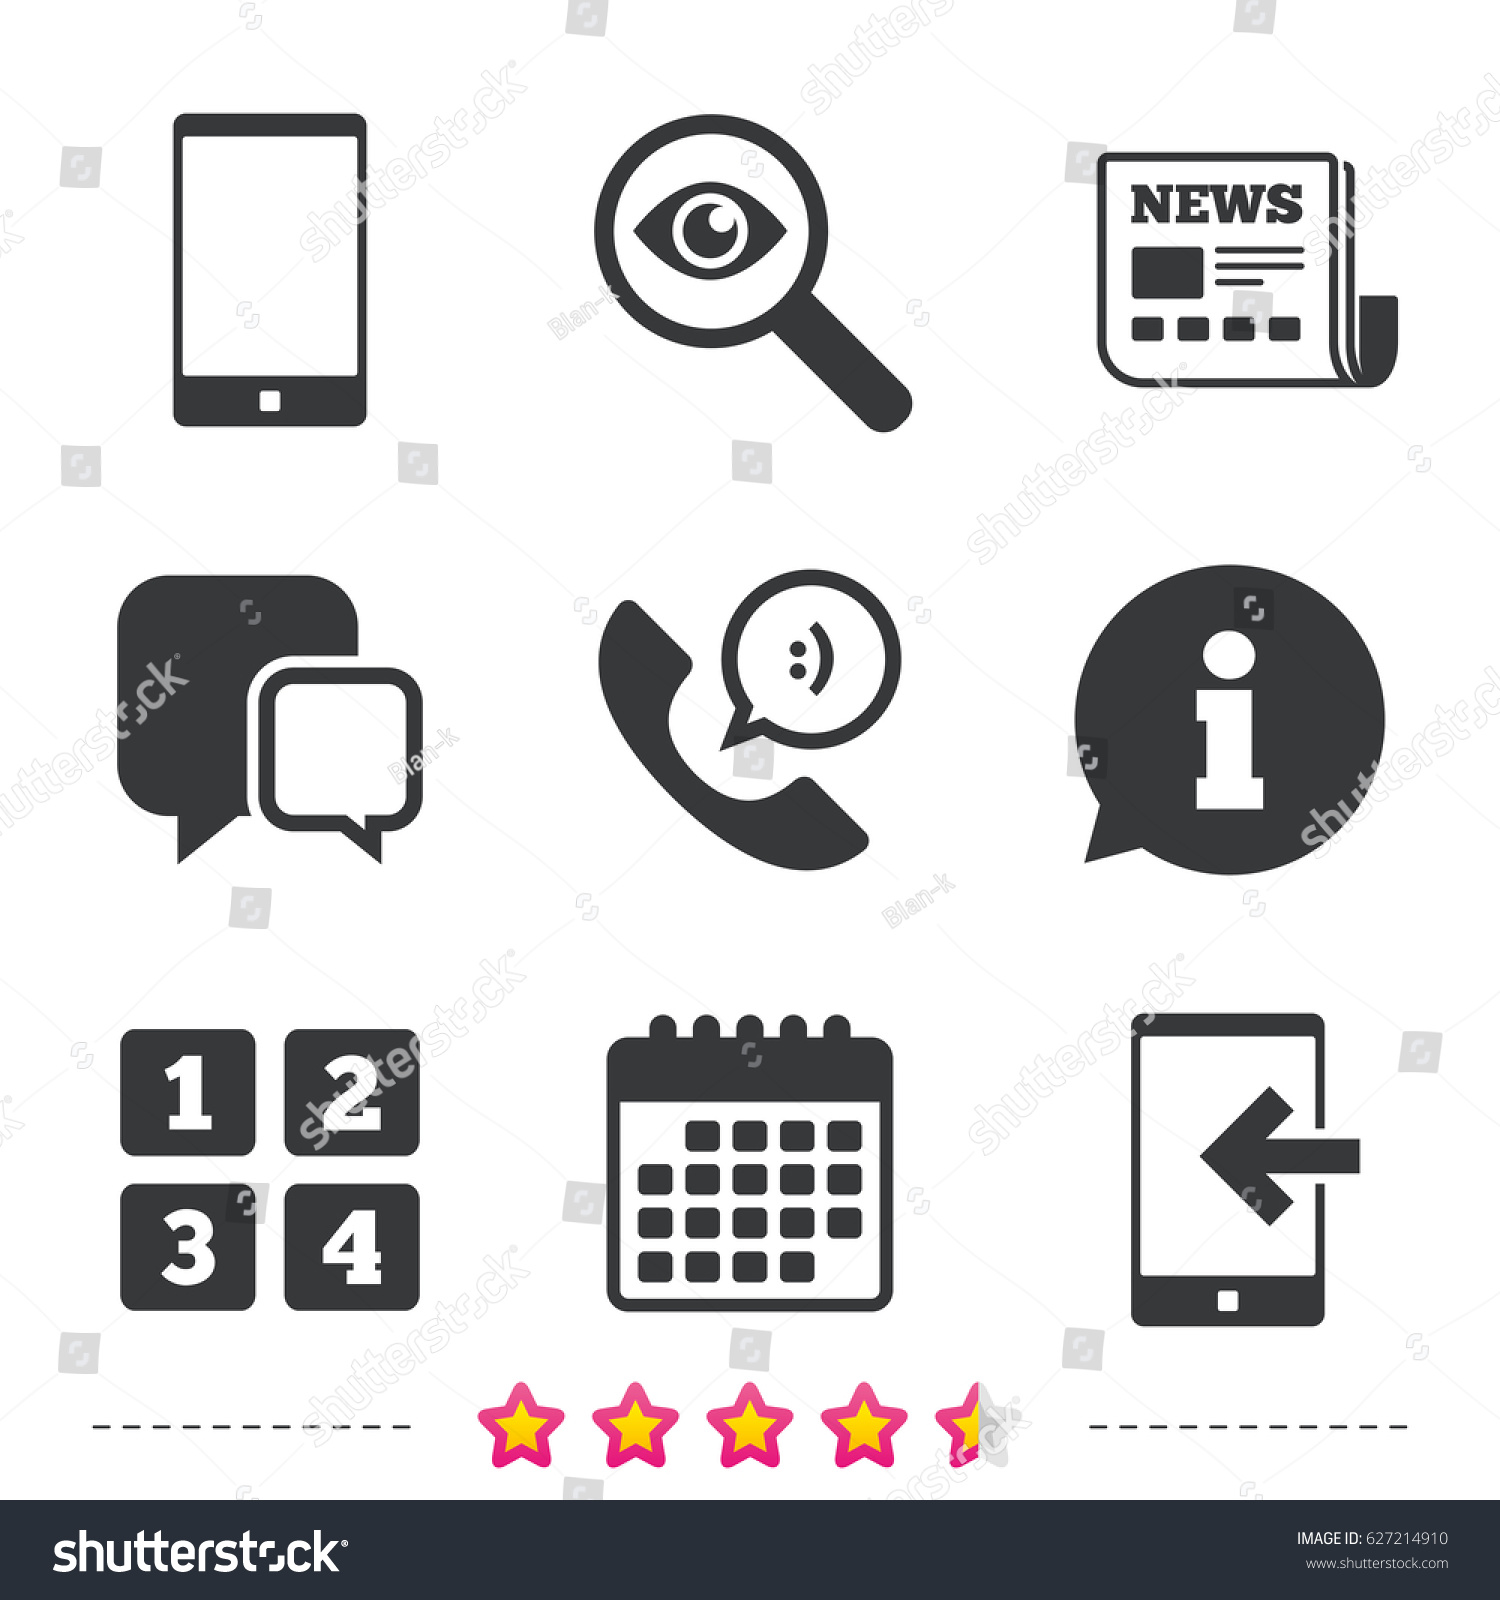 Phone icons smartphone incoming call sign stock vector 627214910 phone icons smartphone incoming call sign call center support symbol cellphone keyboard symbol biocorpaavc Gallery